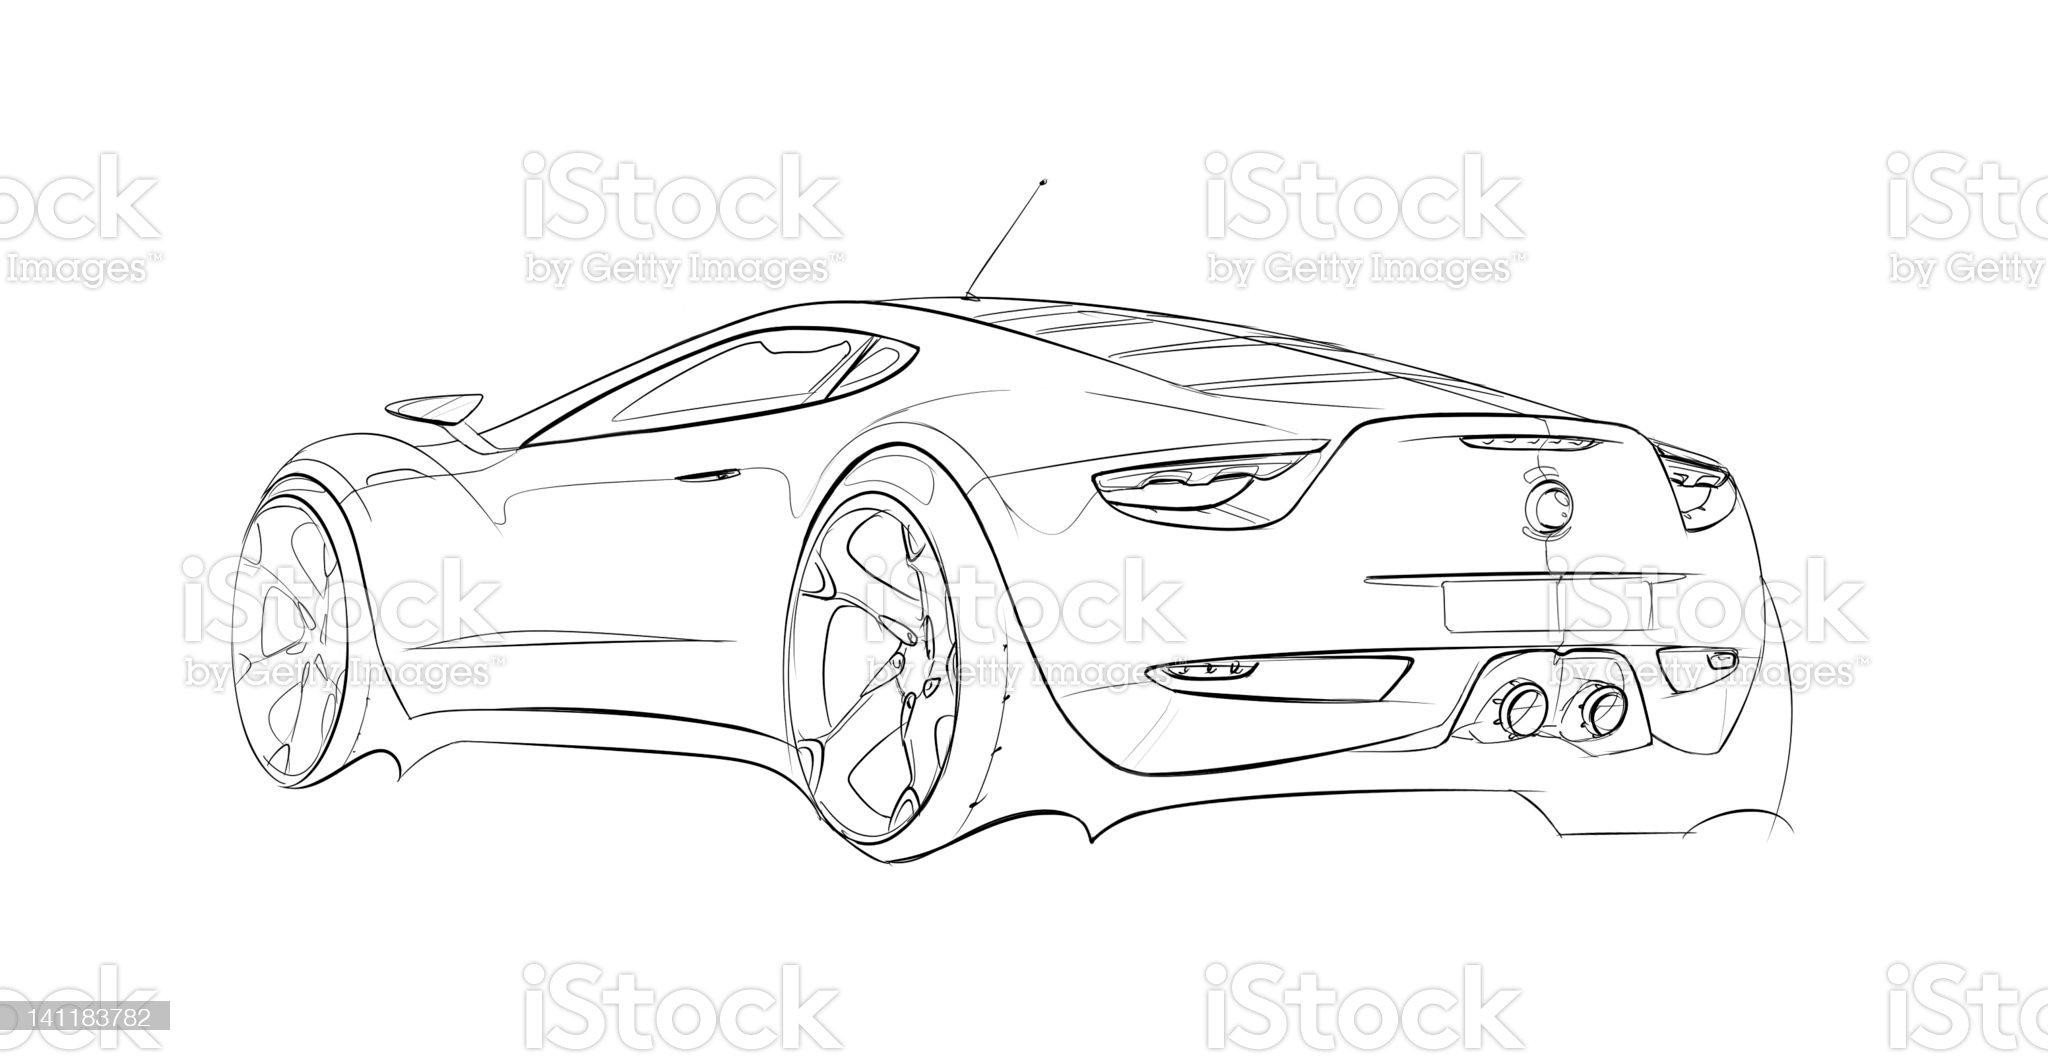 Car Concept Line Drawing royalty-free stock vector art